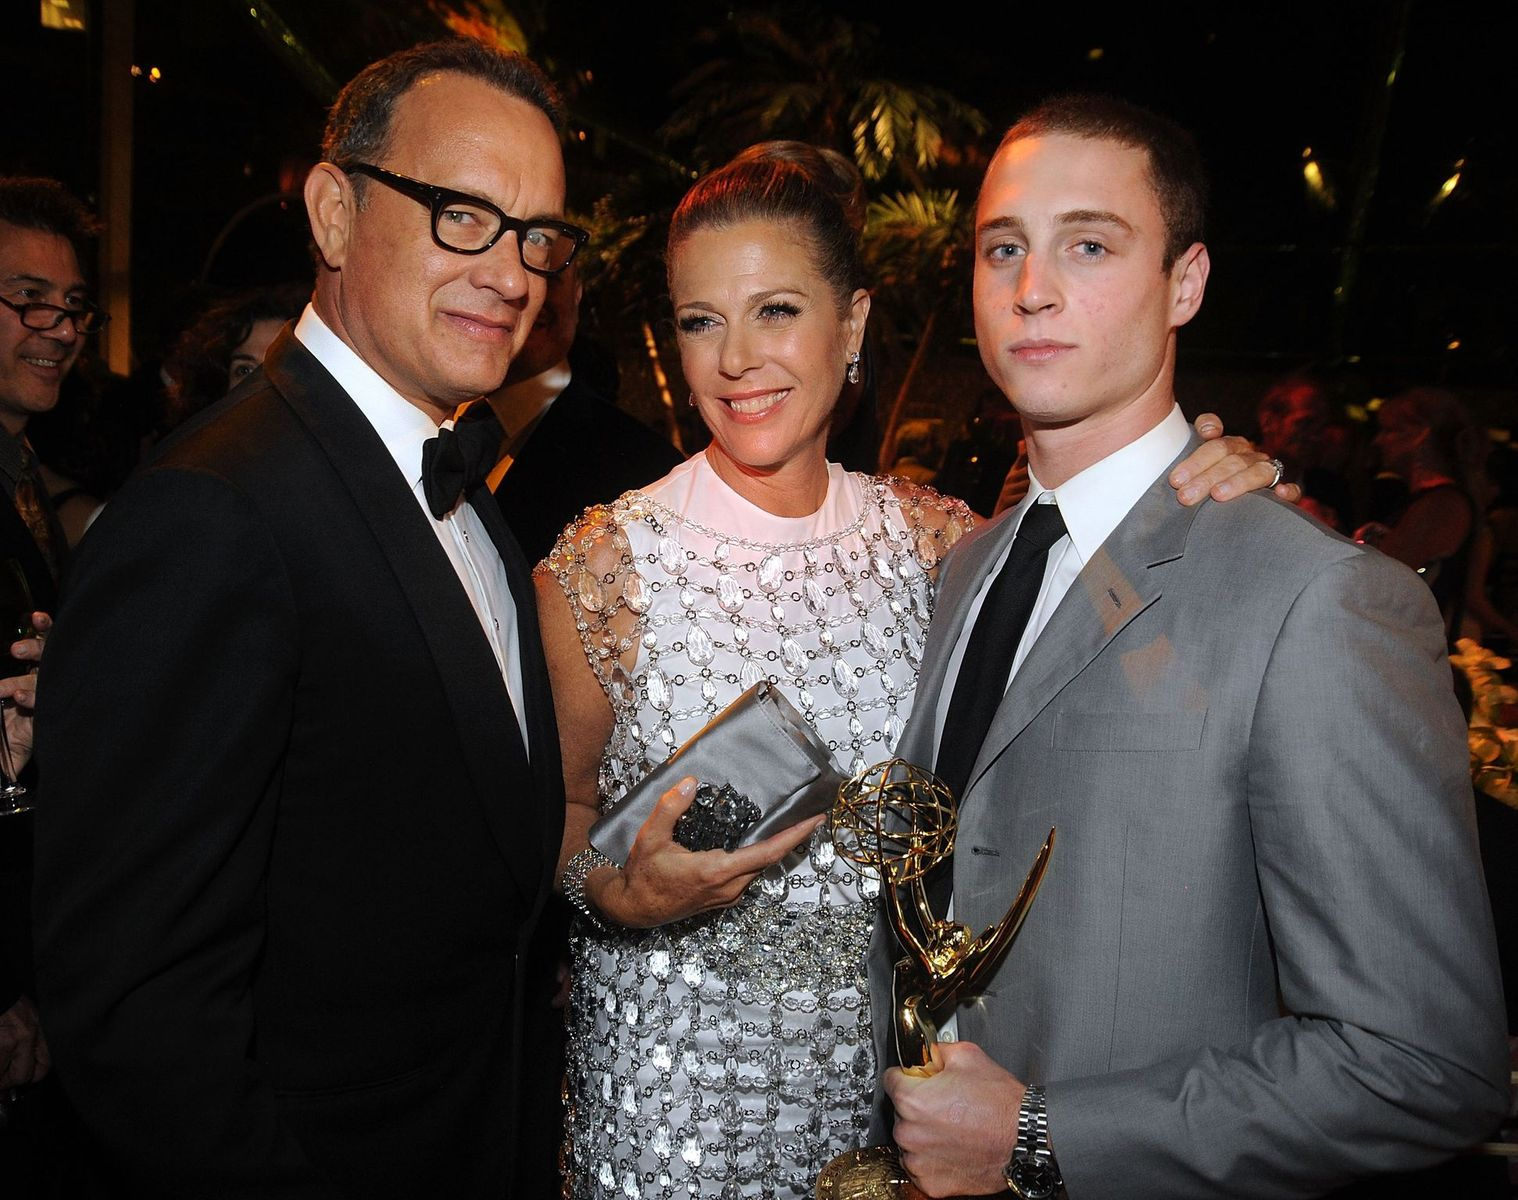 Producer/actor Tom Hanks, actress Rita Wilson and actor Chet Hanks at HBO's Annual Emmy Awards after party at the Pacific Design Center on August 29, 2010 | Photo: Getty Images